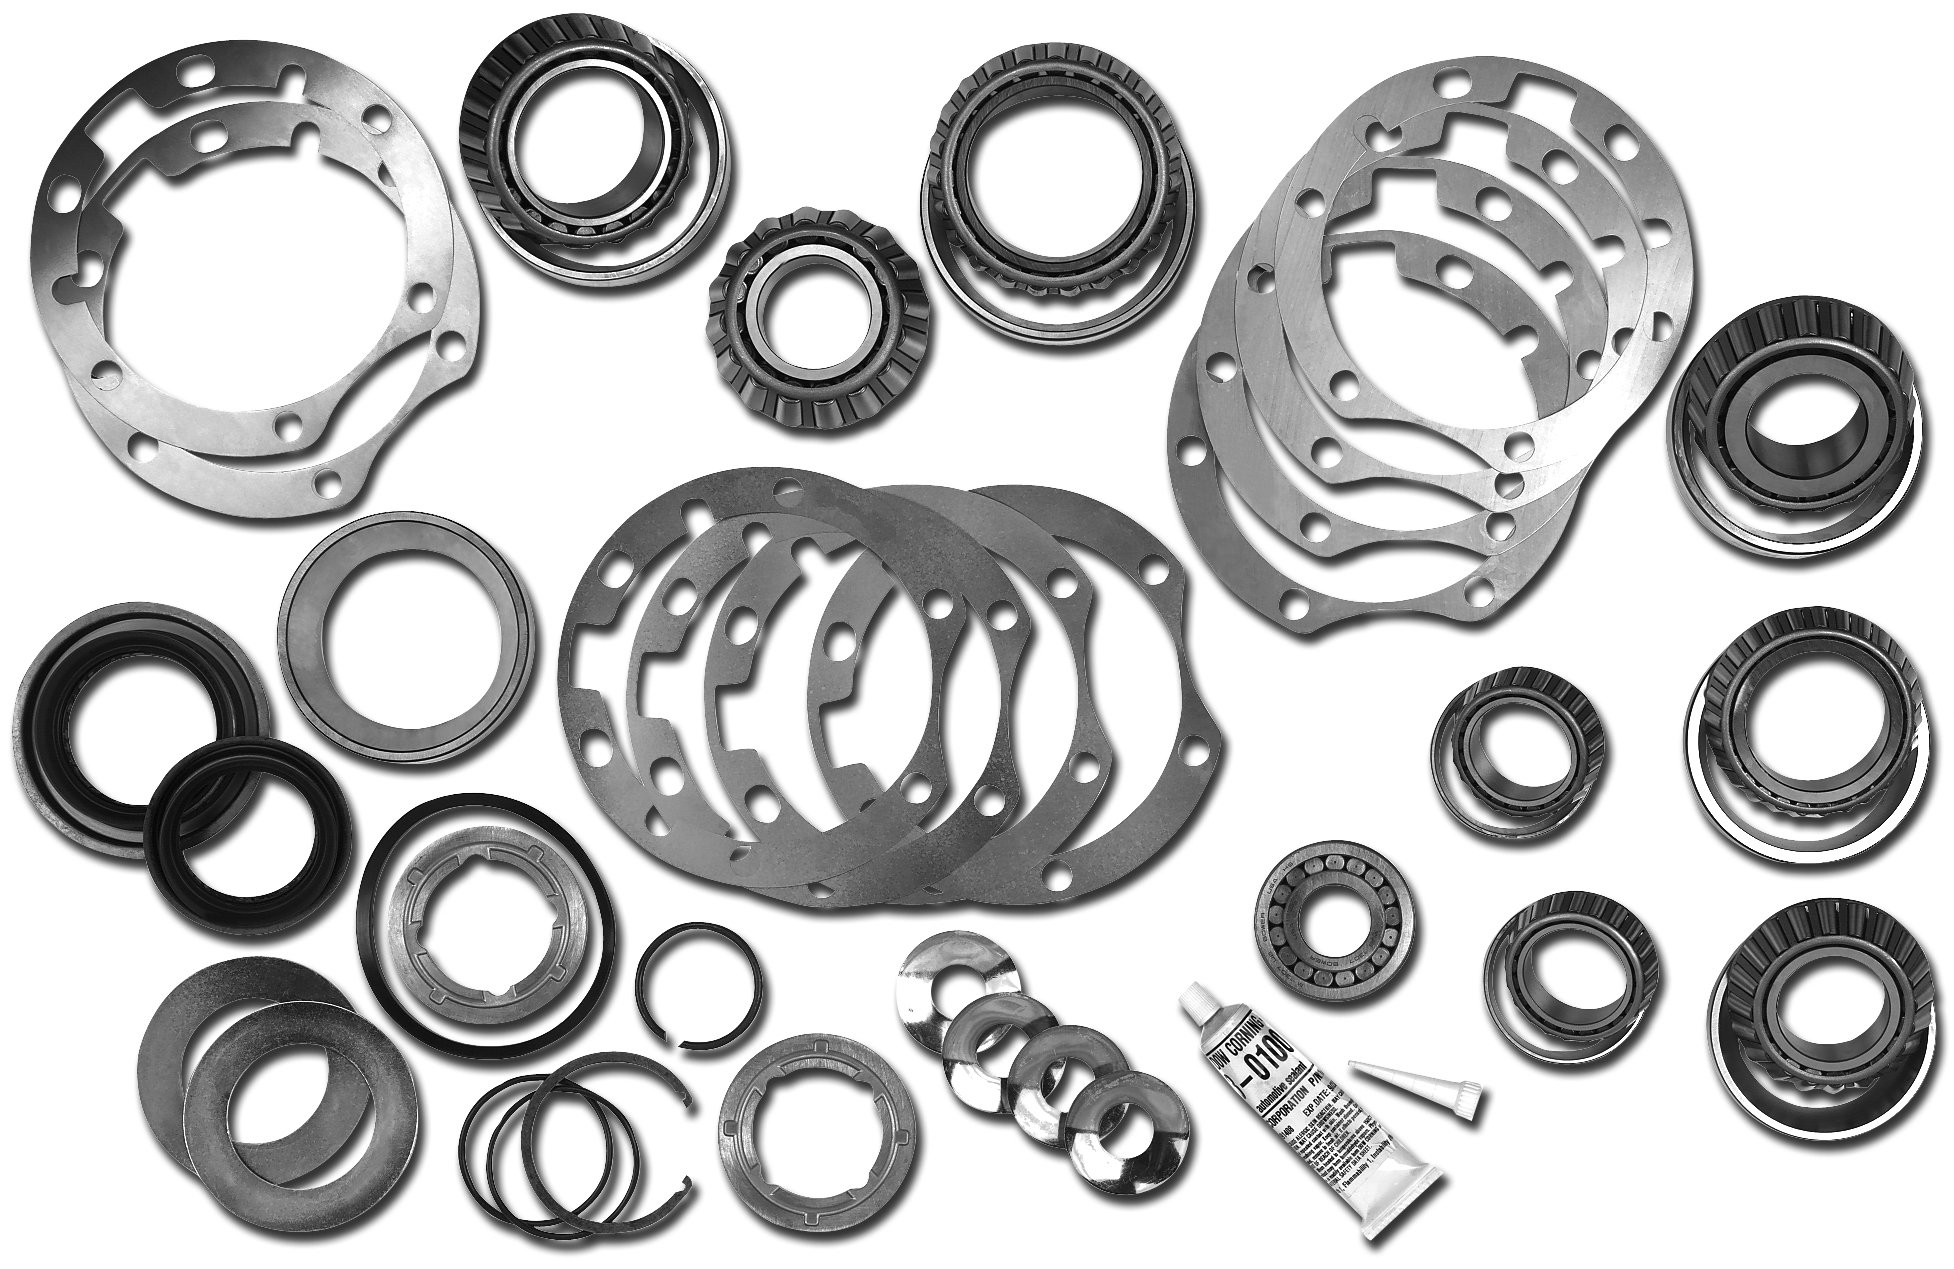 Dana Spicer 2017371 Master Axle Overhaul Kit for 90-95